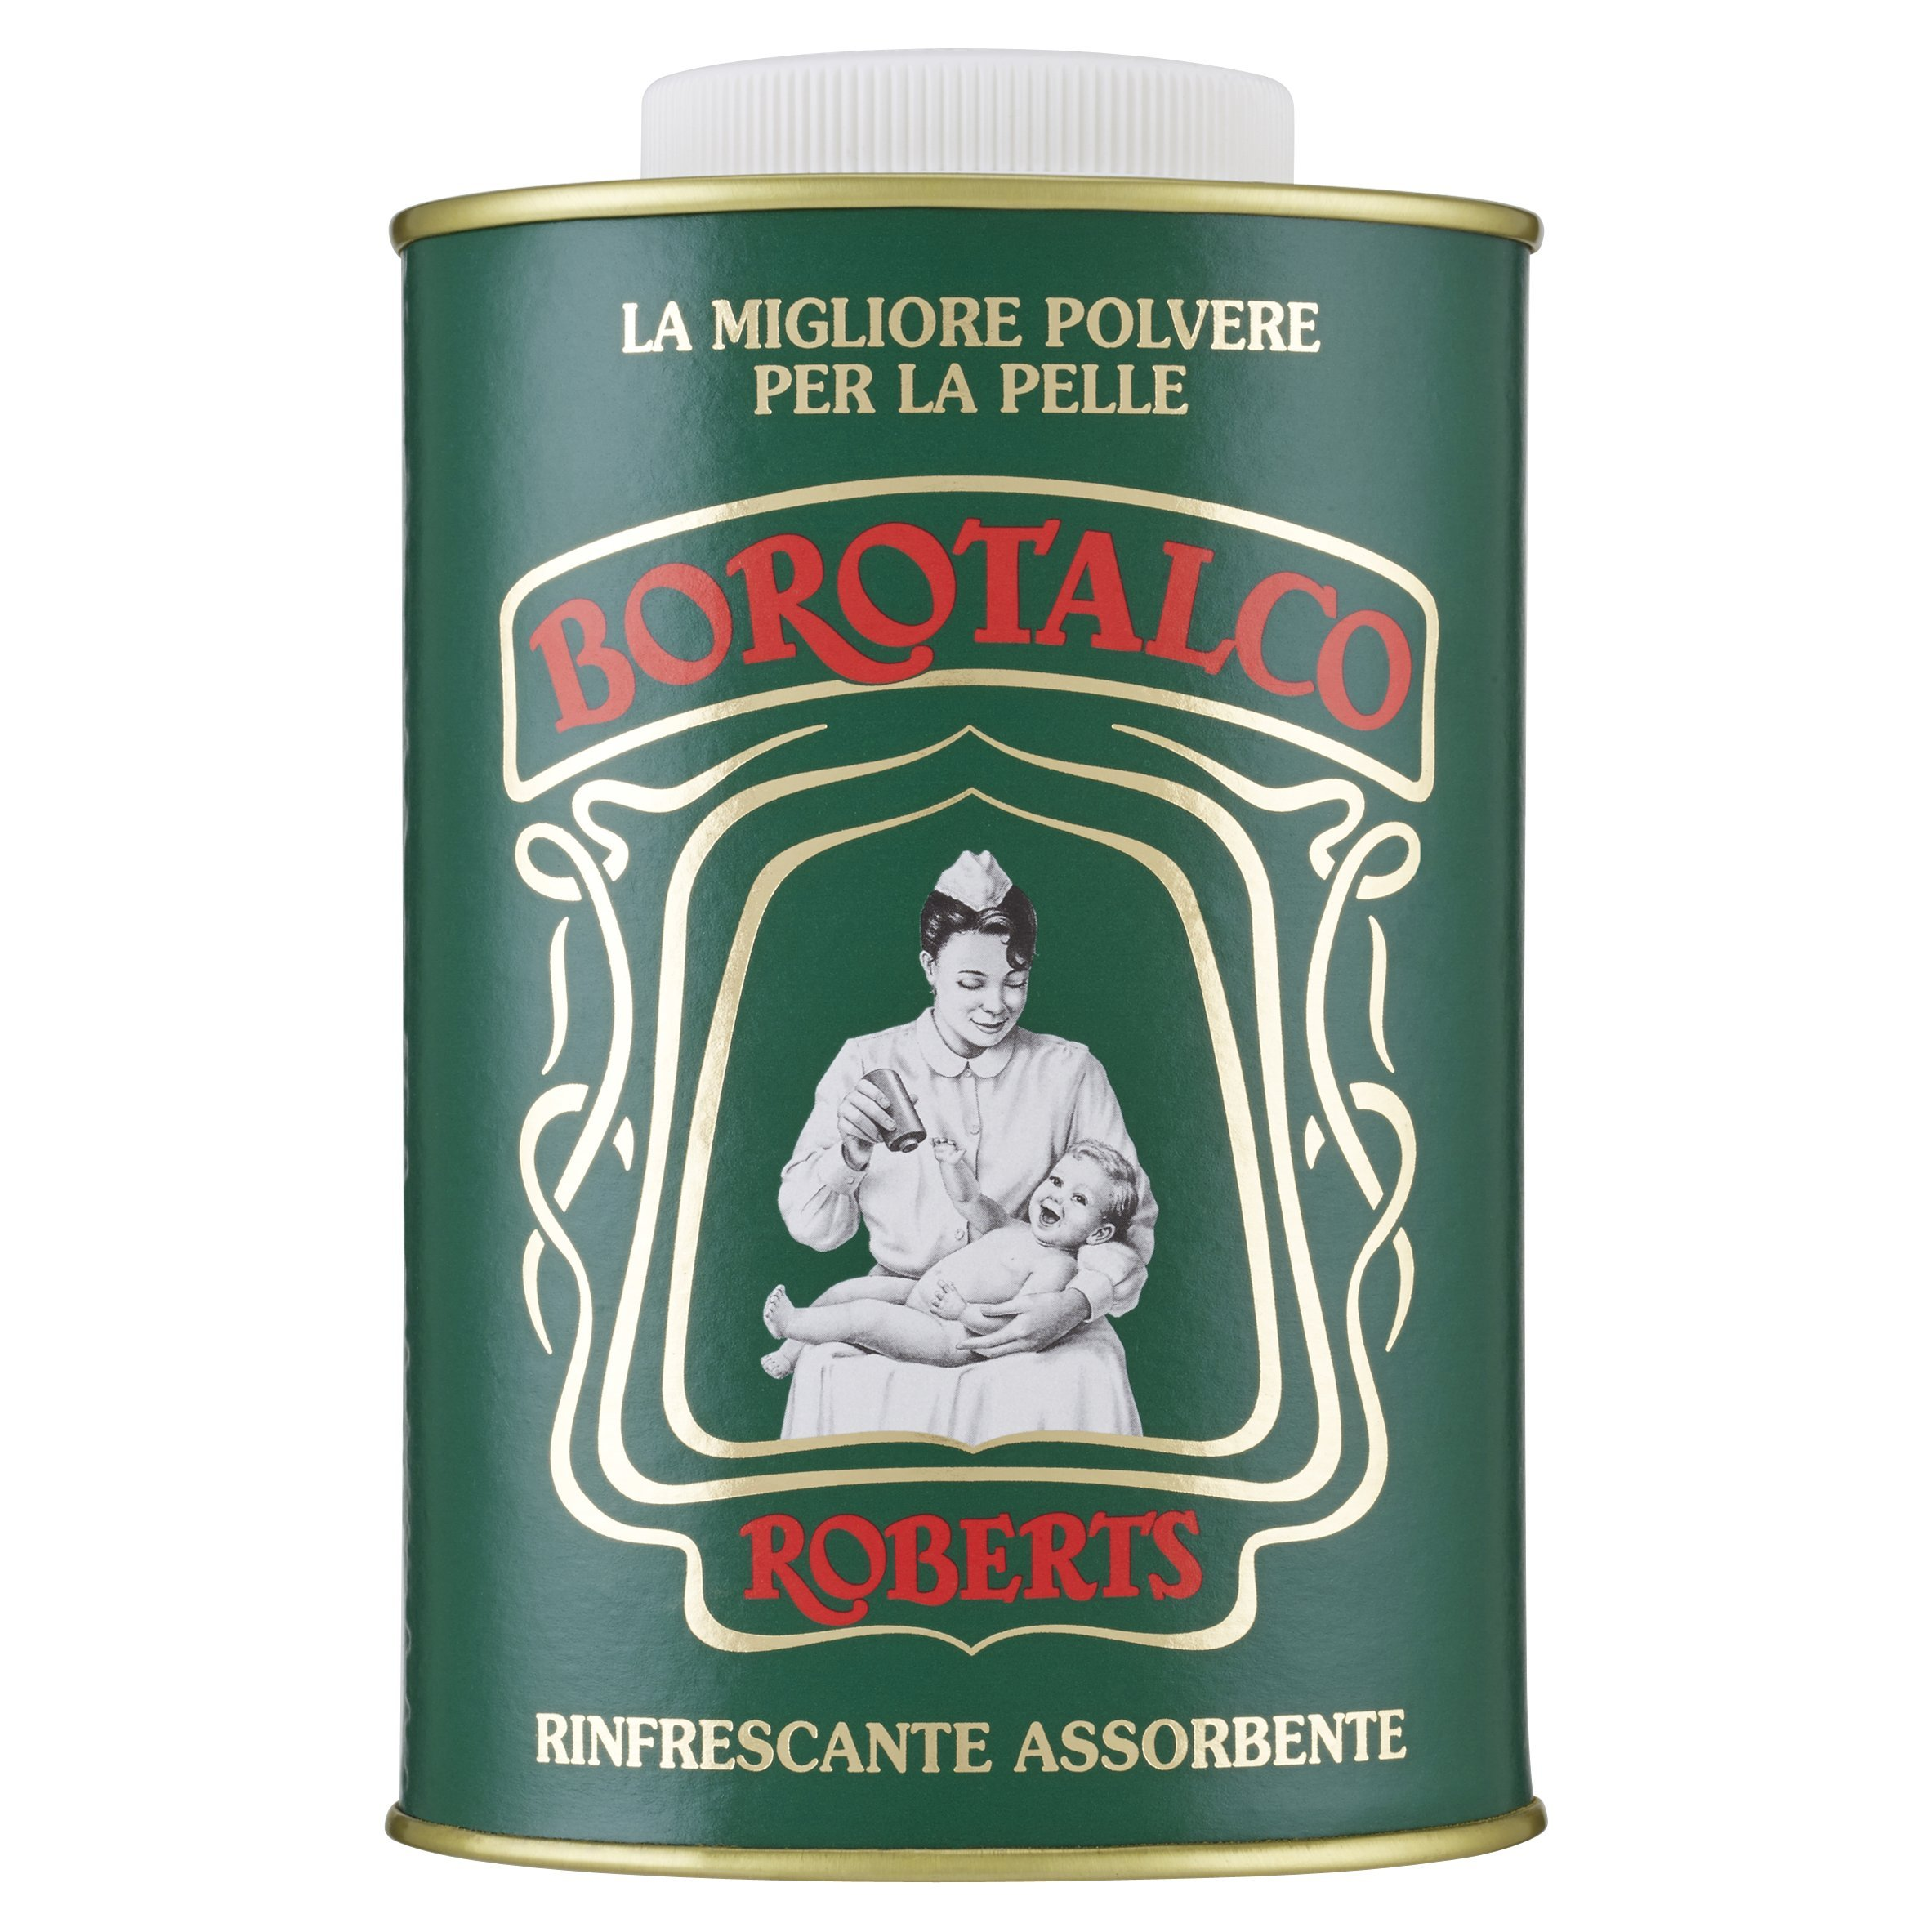 Borotalco Powder 17.5oz powder by Manetti H. Roberts by Manetti H. Roberts